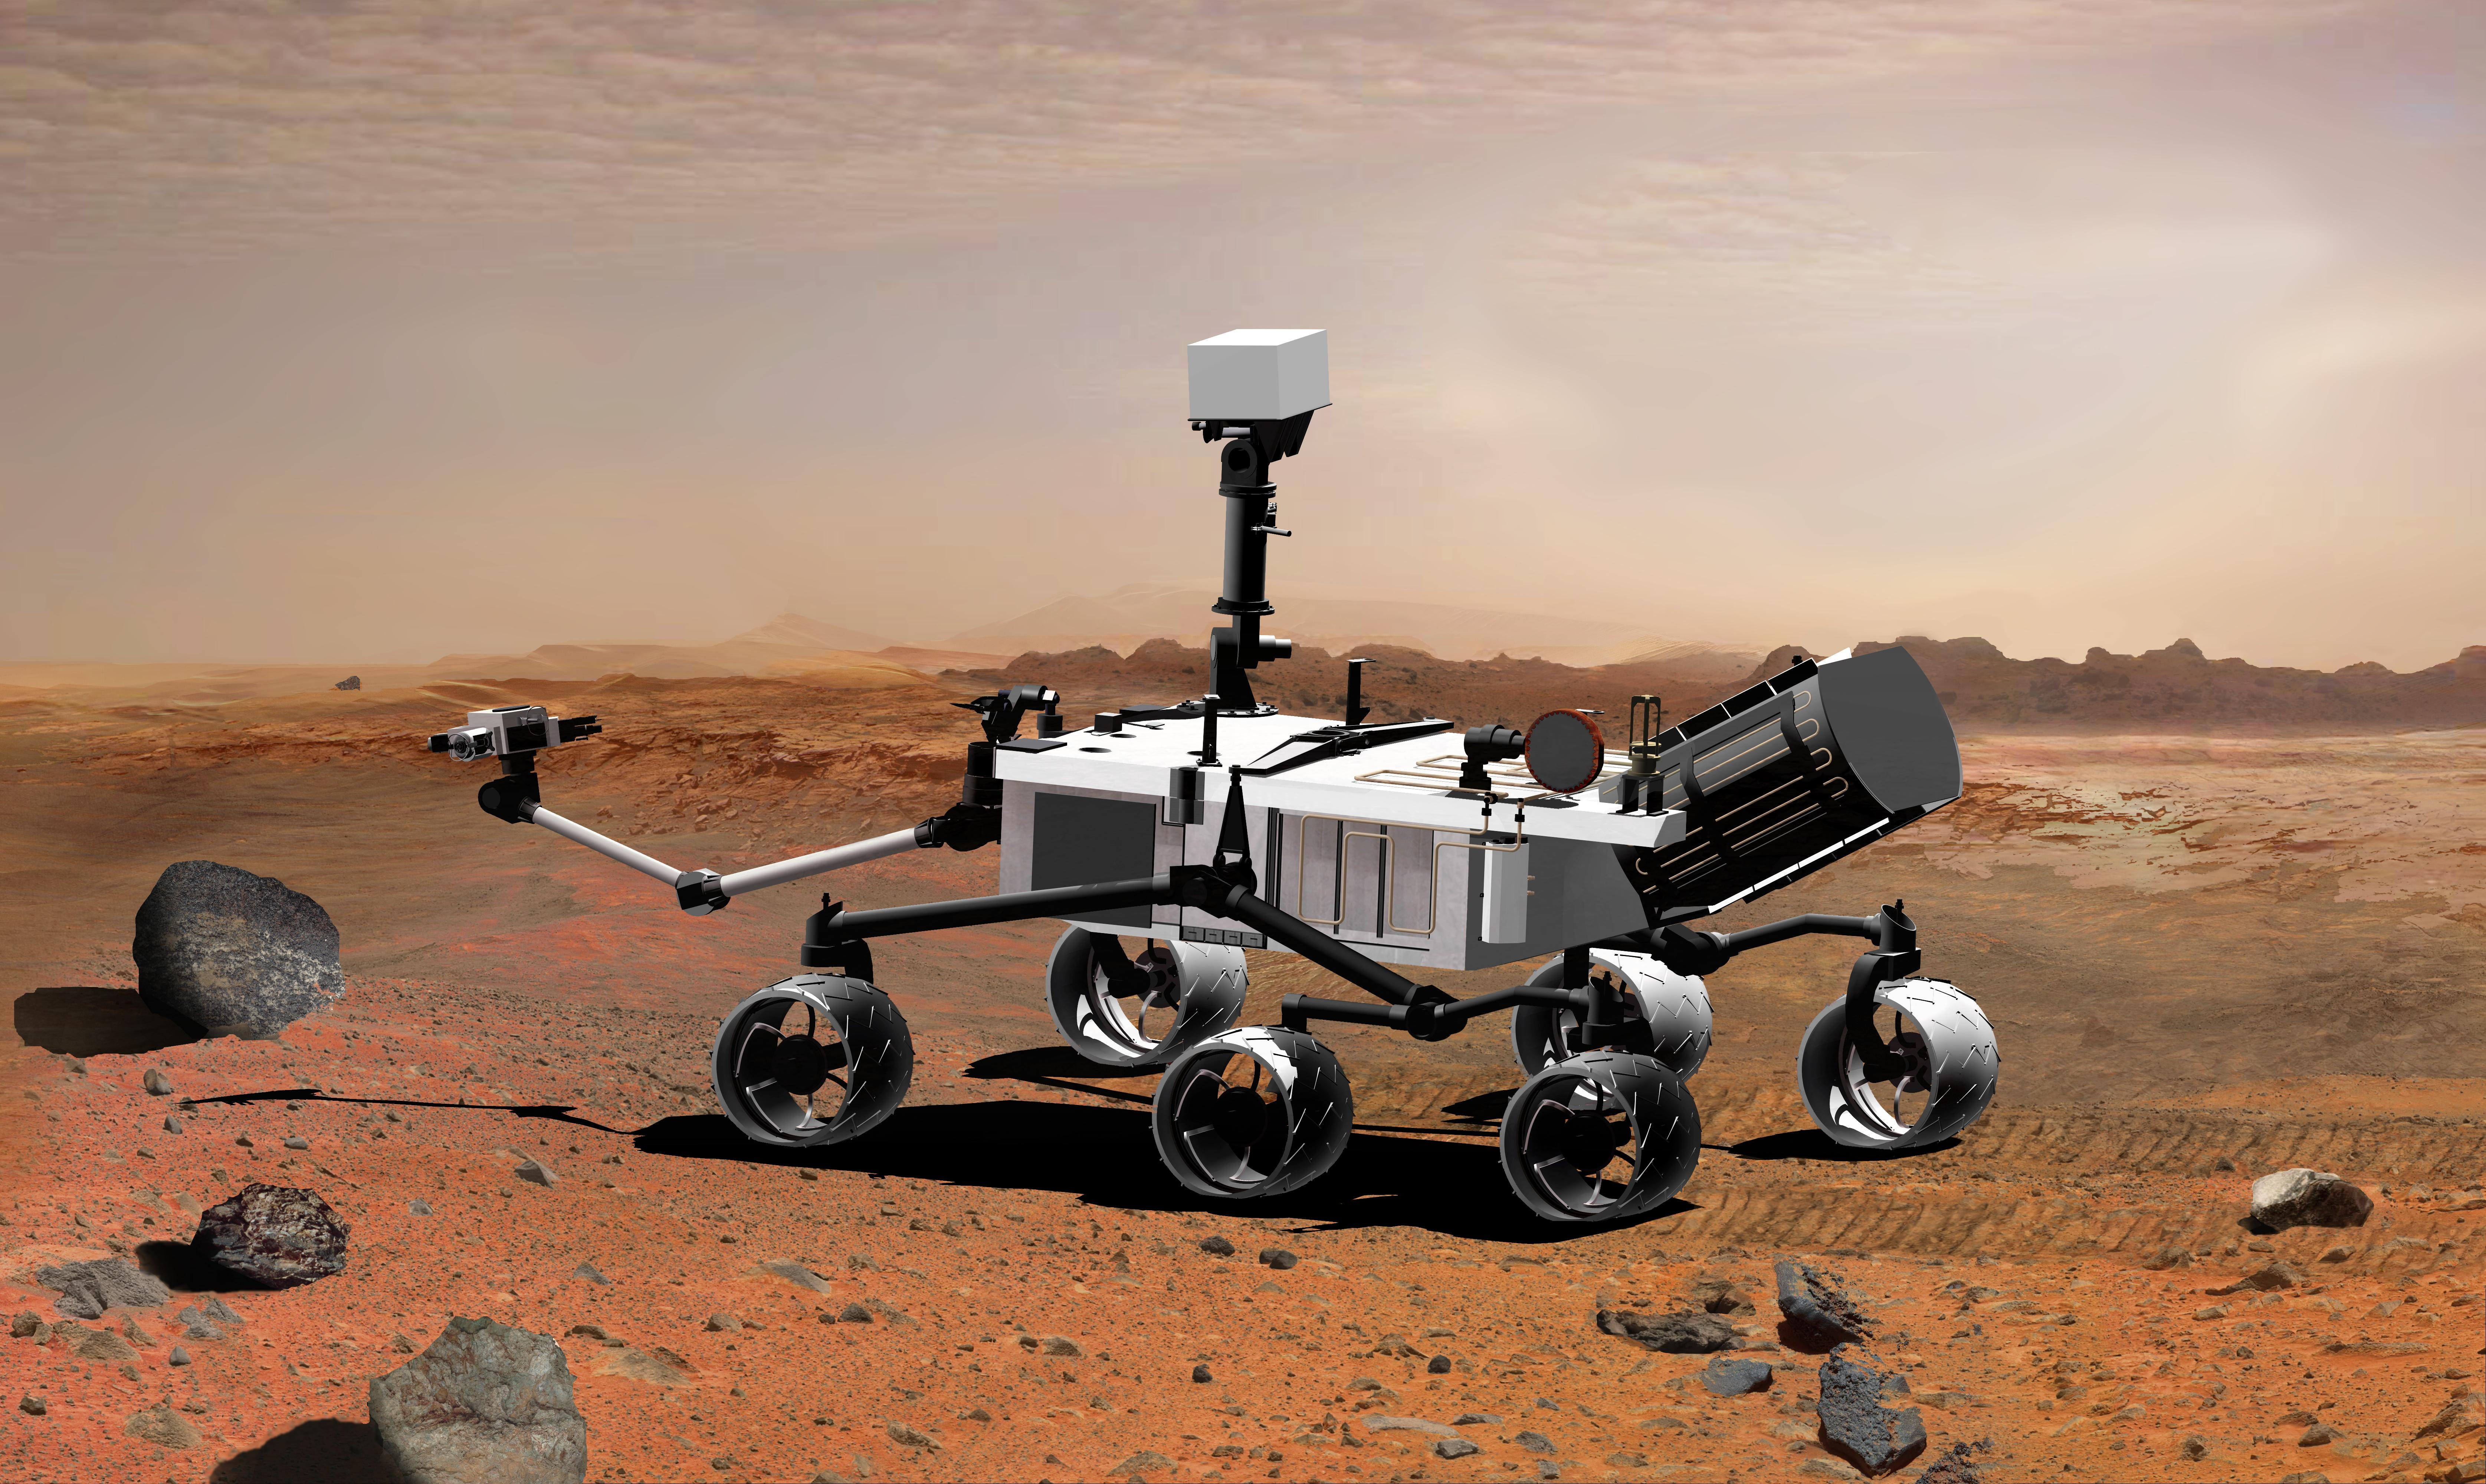 Mars Curiosity: Facts and Information